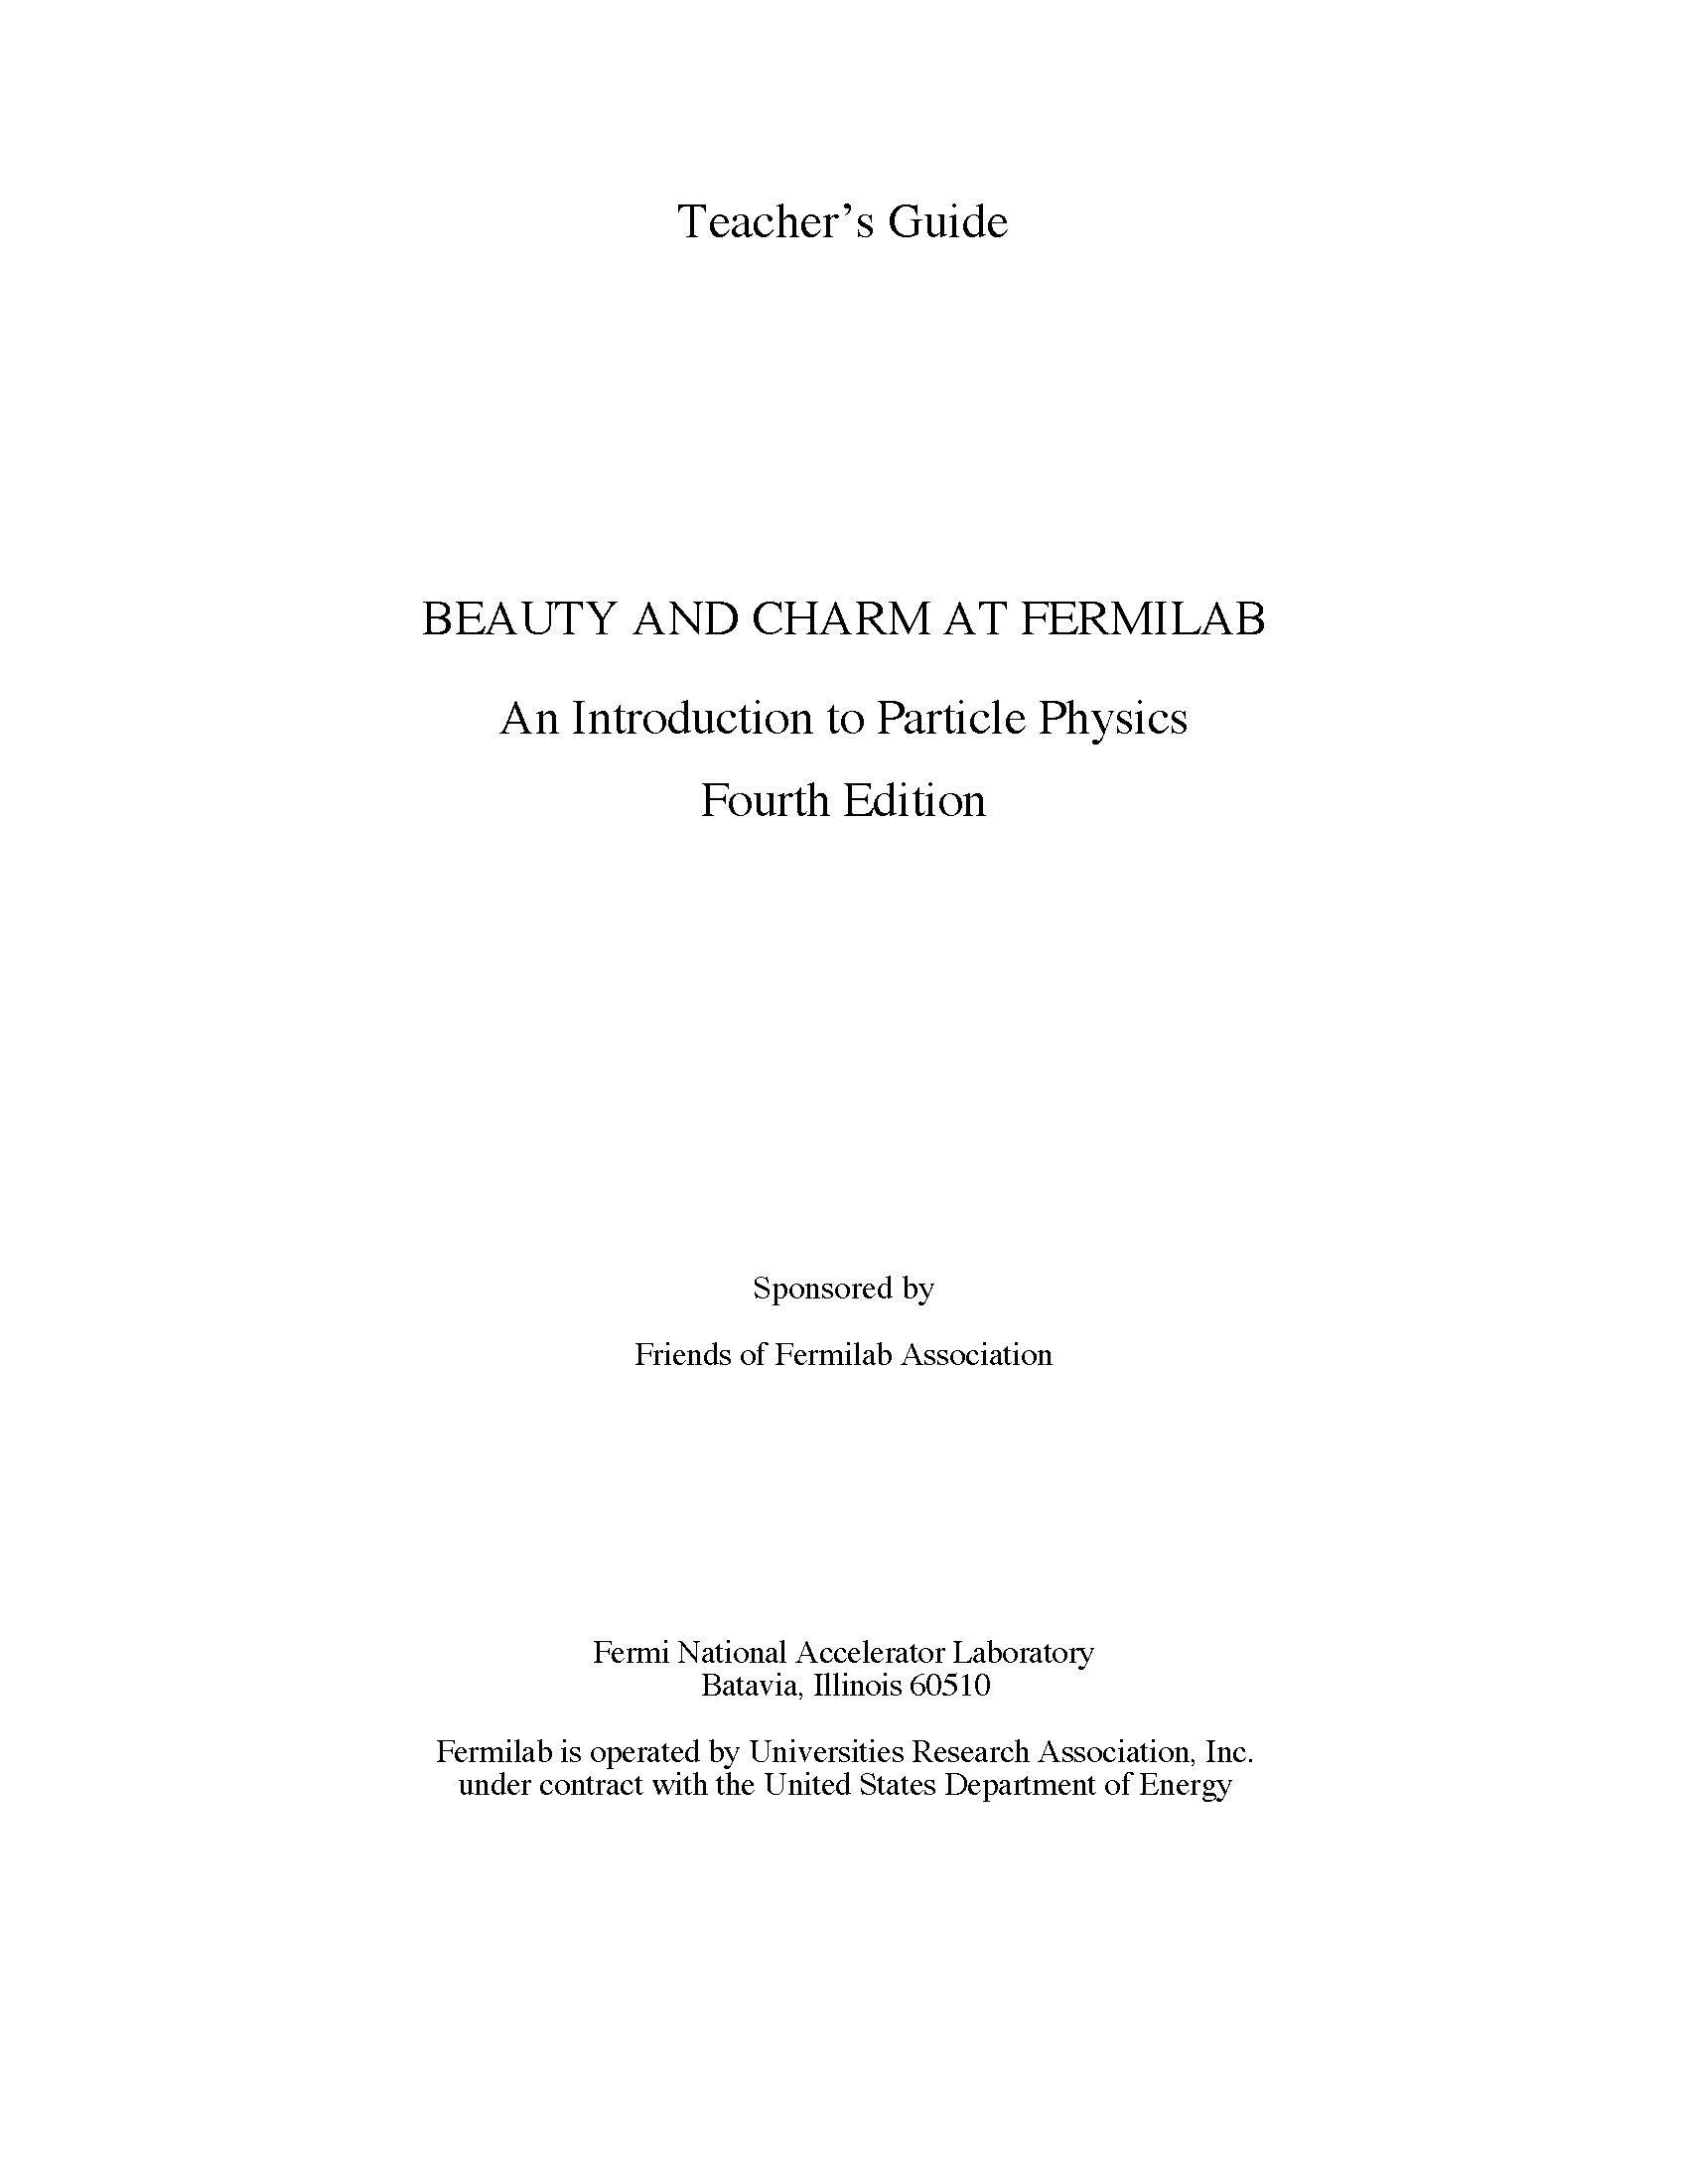 Read Online BEAUTY AND CHARM AT FERMILAB An Introduction to Particle Physics Fourth Edition Teacher's Guide [Loose Leaf Publication] pdf epub